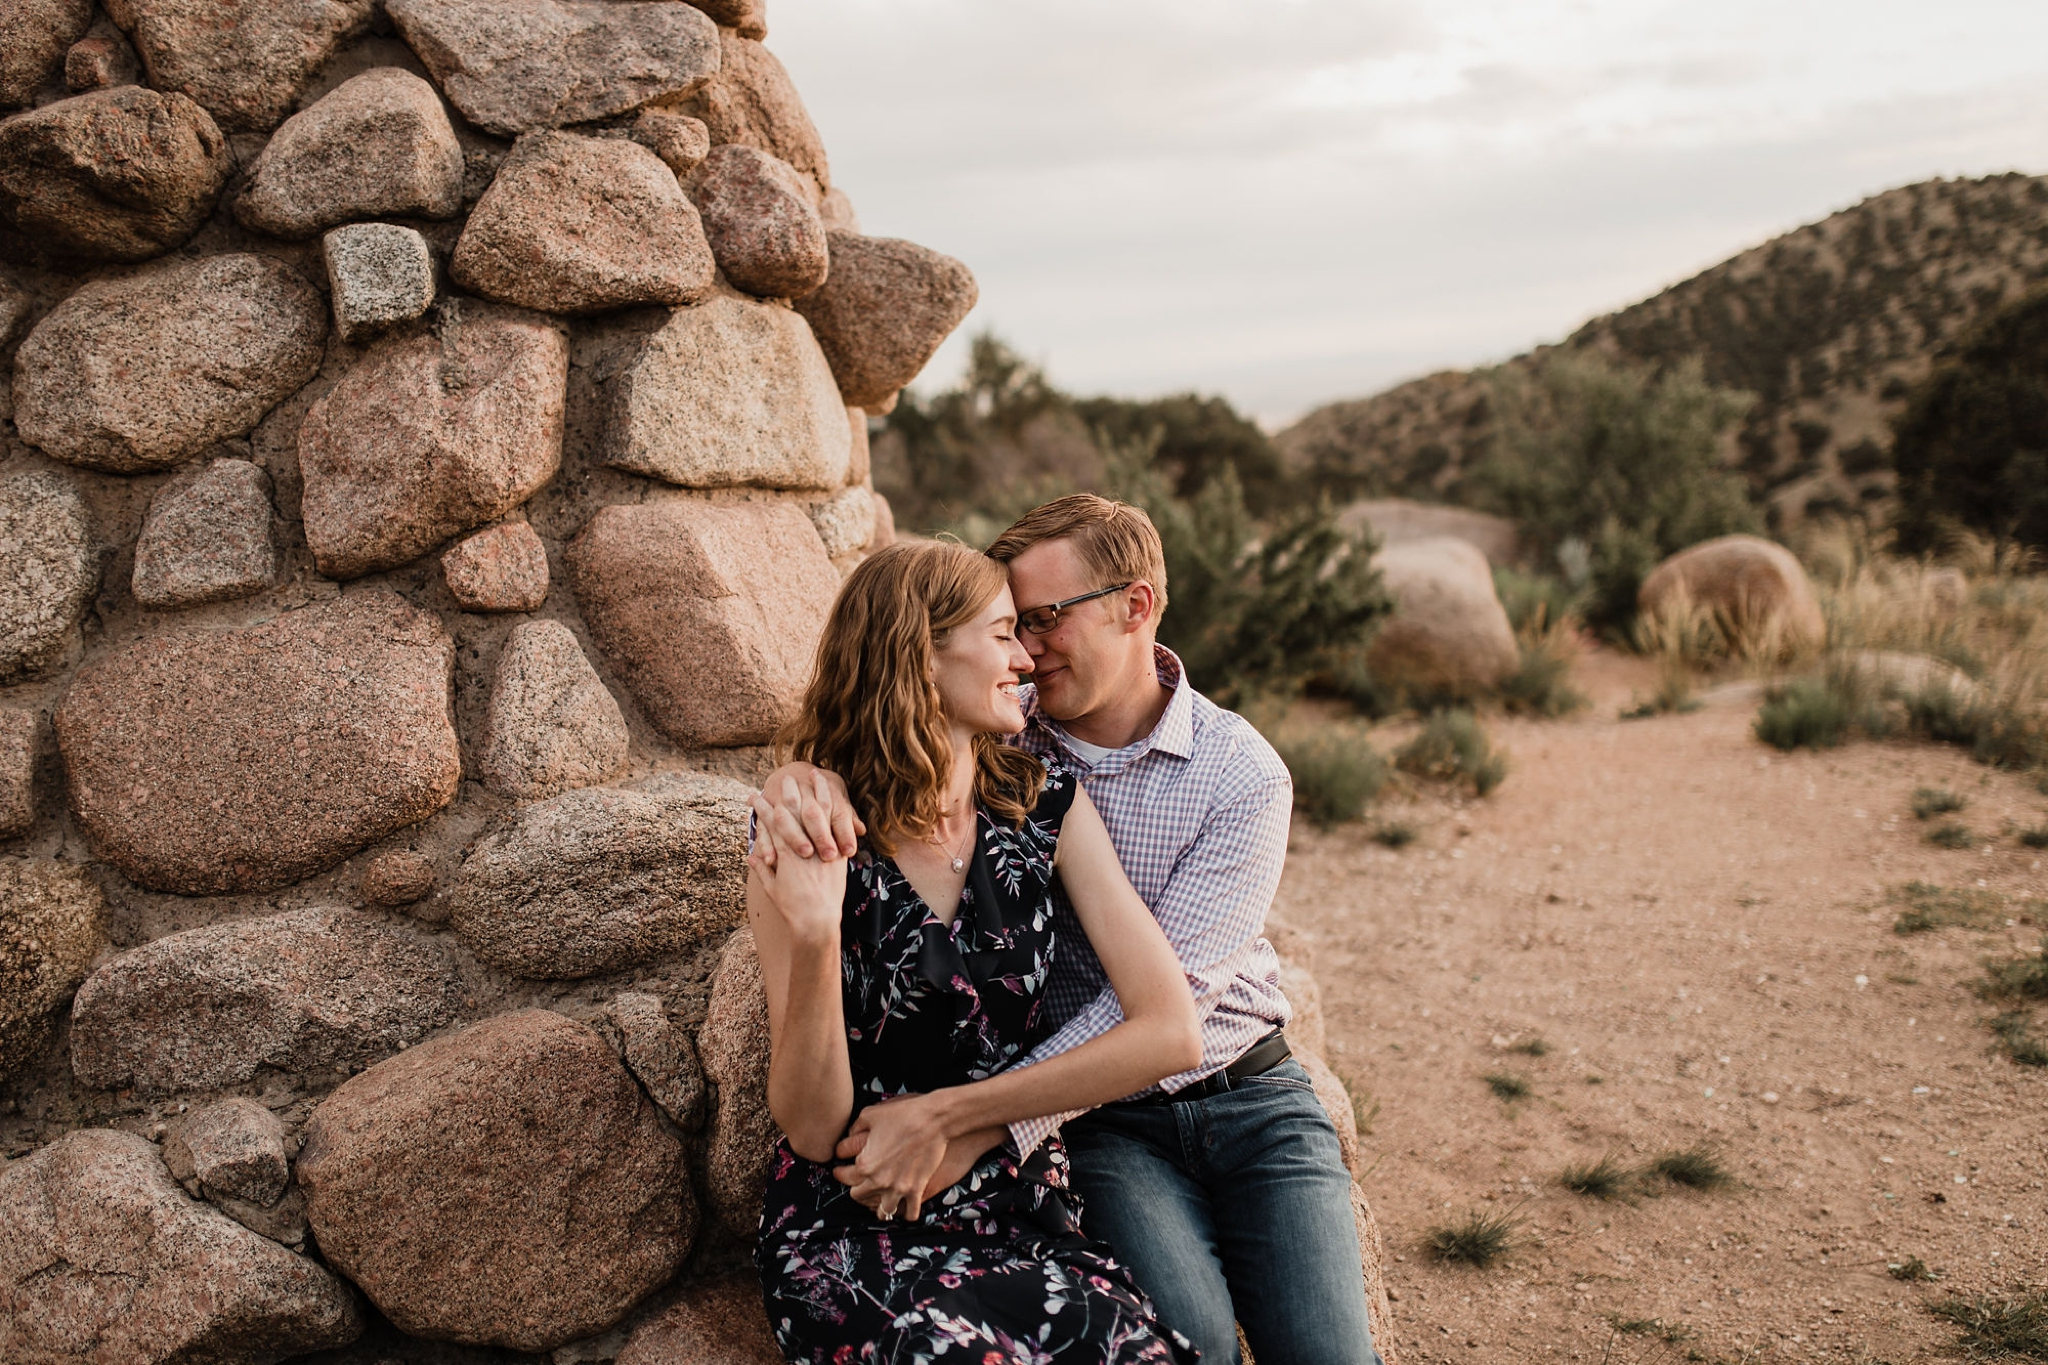 Alicia+lucia+photography+-+albuquerque+wedding+photographer+-+santa+fe+wedding+photography+-+new+mexico+wedding+photographer+-+new+mexico+wedding+-+new+mexico+engagement+-+mountain+engagement+-+casa+perea+wedding_0014.jpg